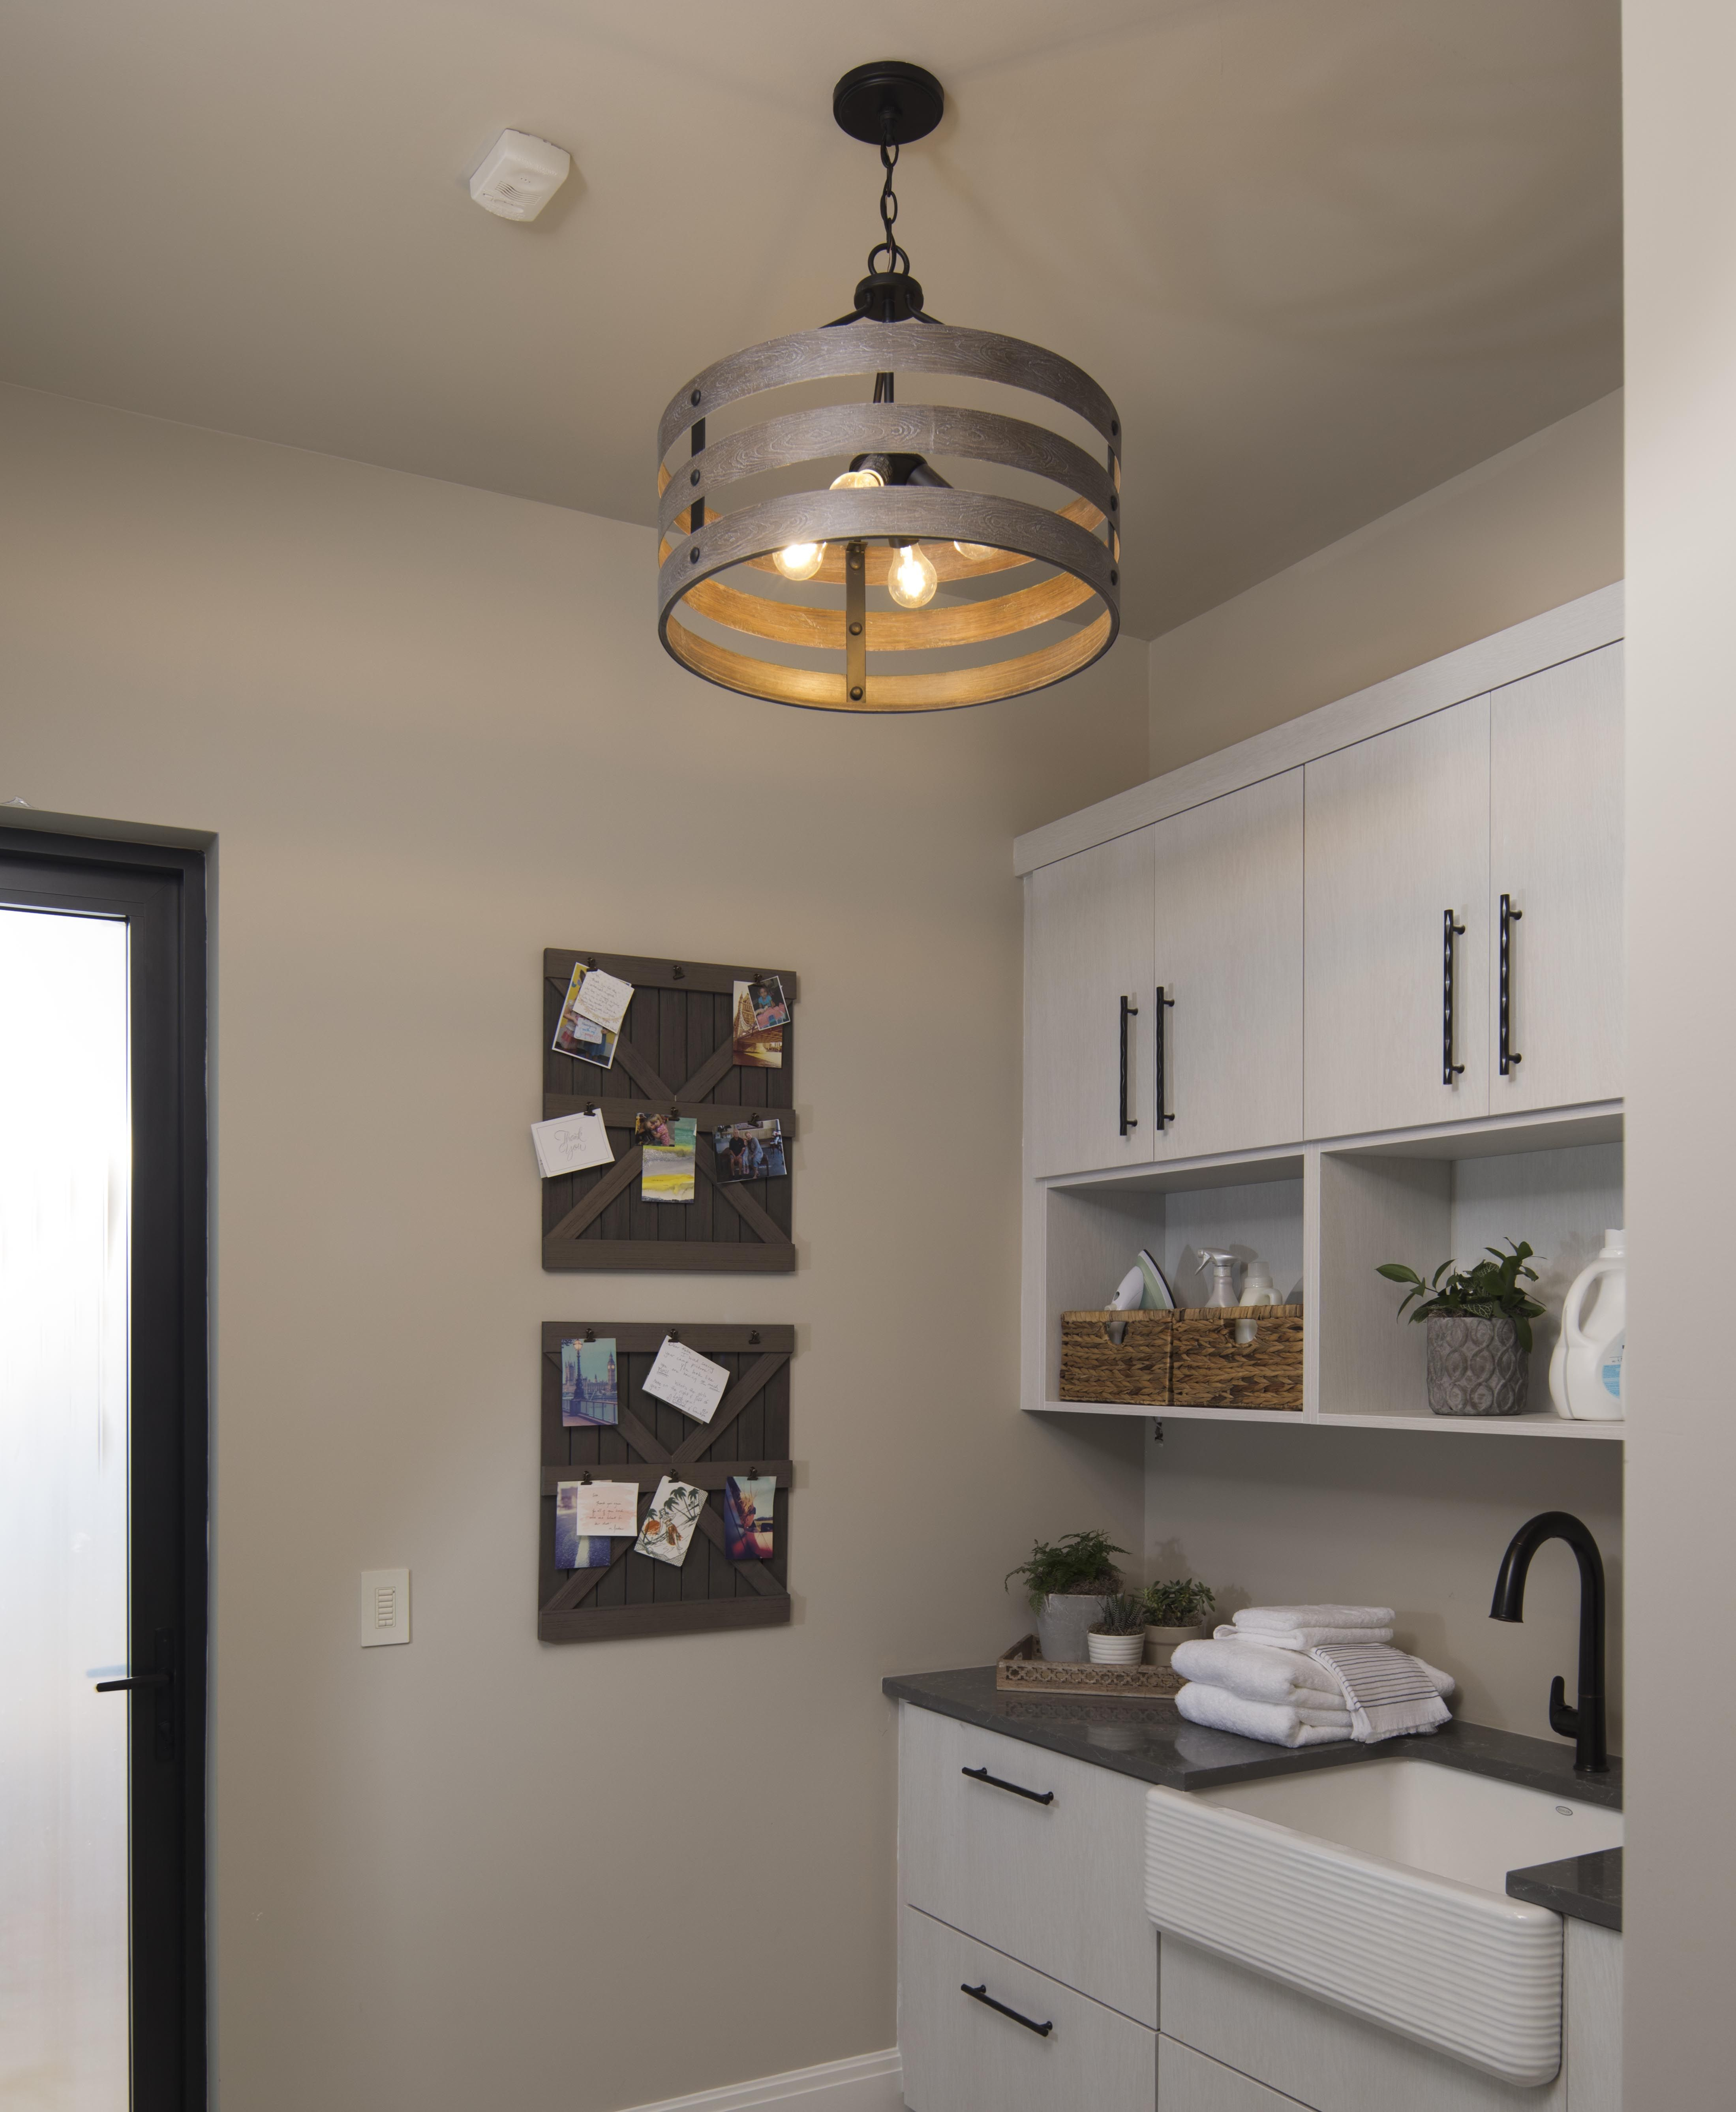 Tnah 2018 | Featuring Gulliver Close To Ceiling Fixture Throughout Buster 5 Light Drum Chandeliers (View 13 of 30)